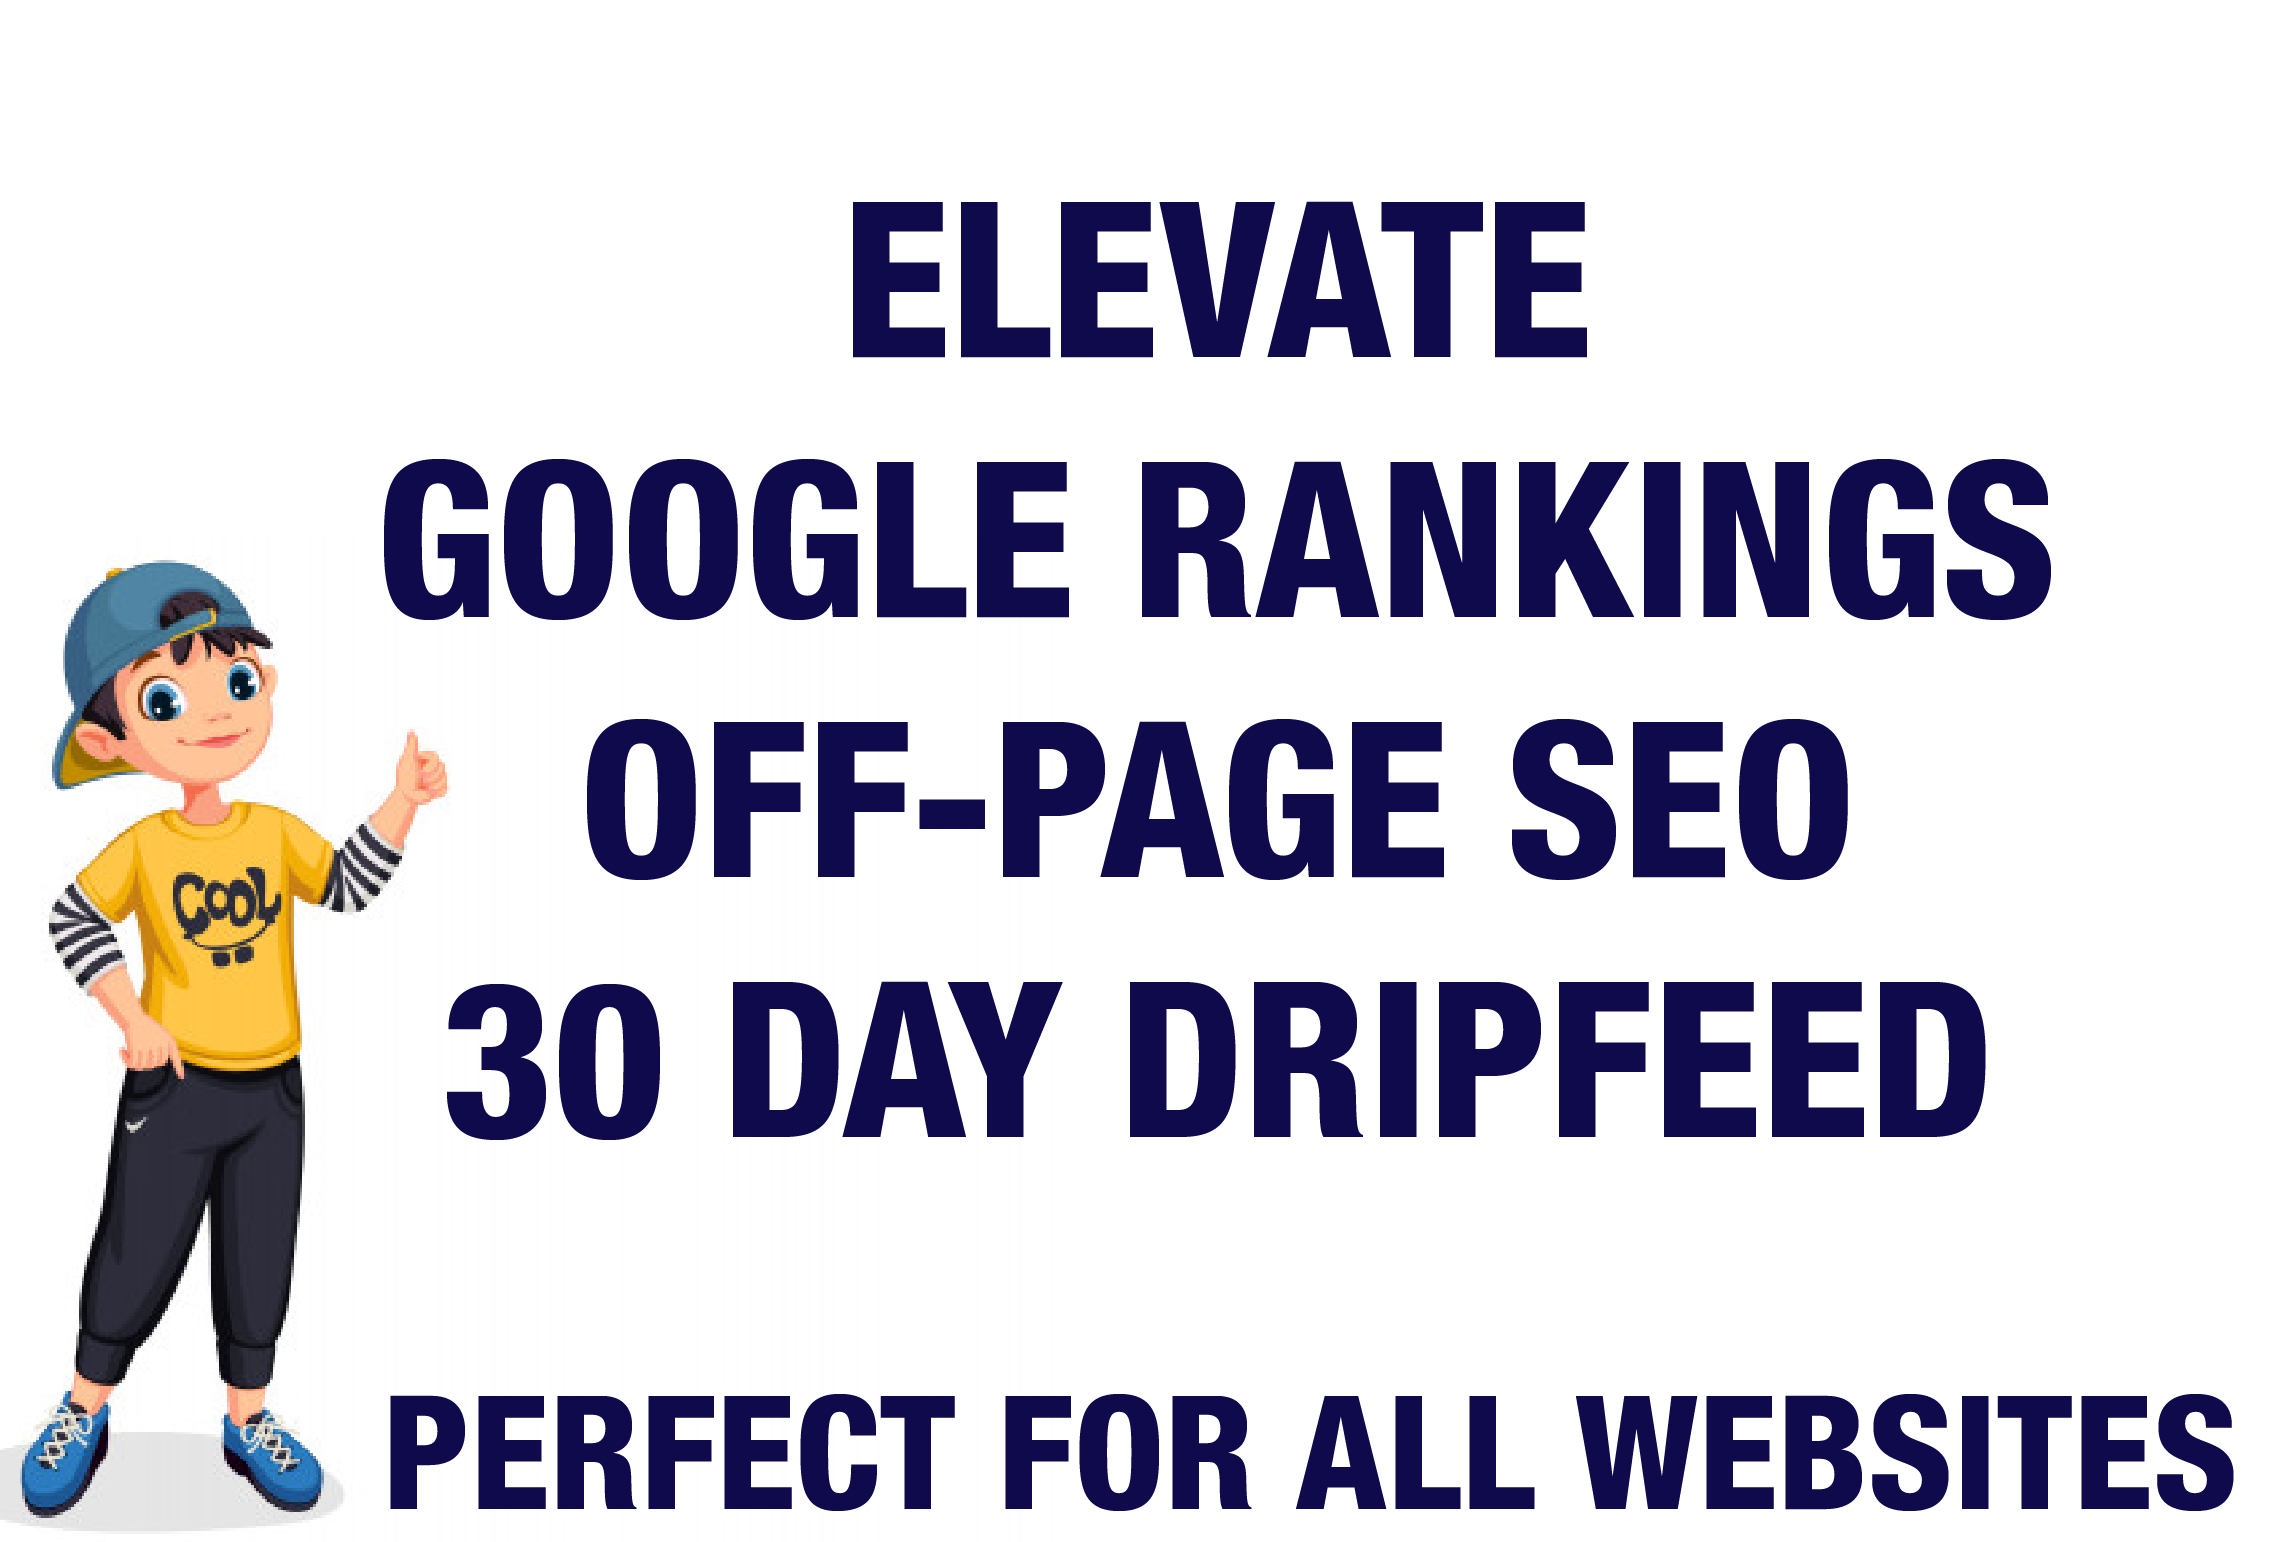 Boost Your Ranking On Google White Hat 30 Day Drip Feed SEO Link Building Service